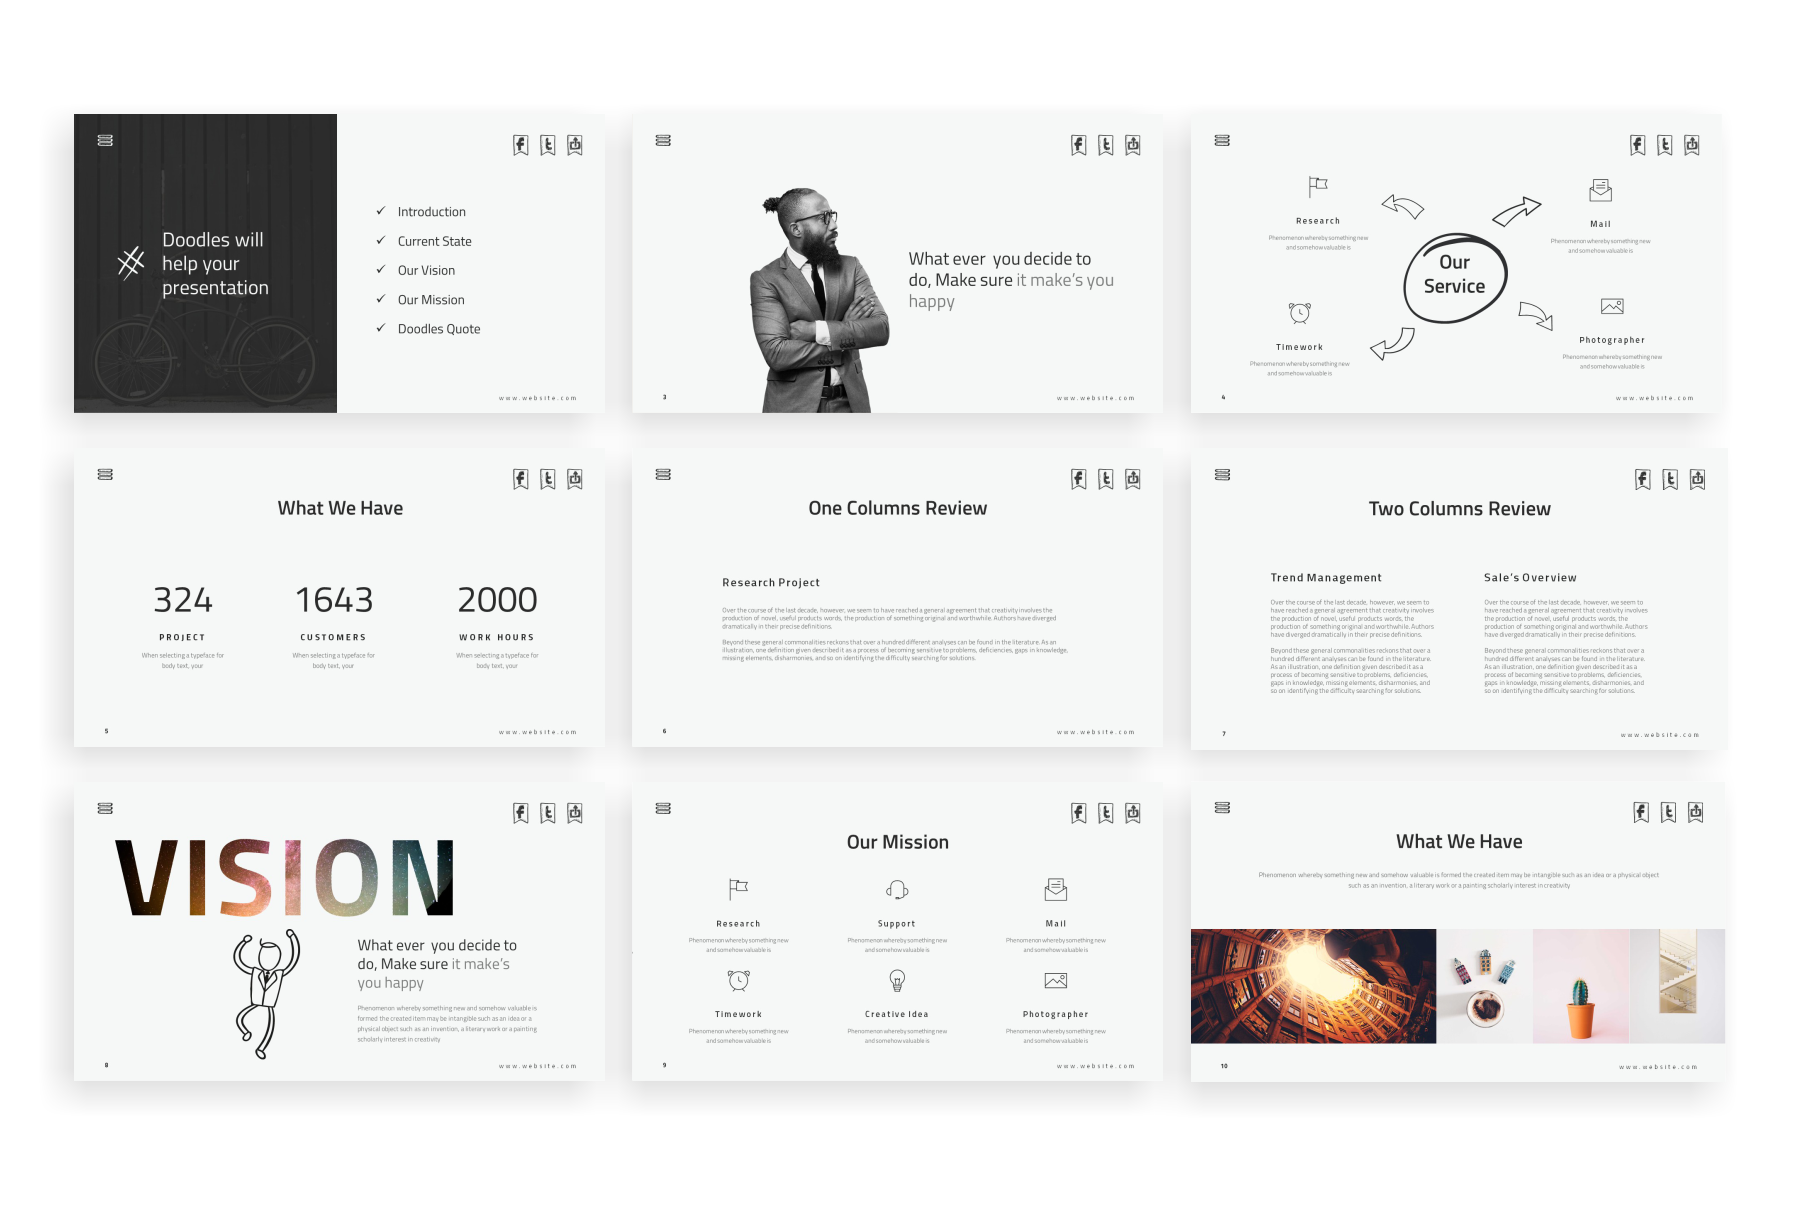 Doodles PowerPoint Template example image 2